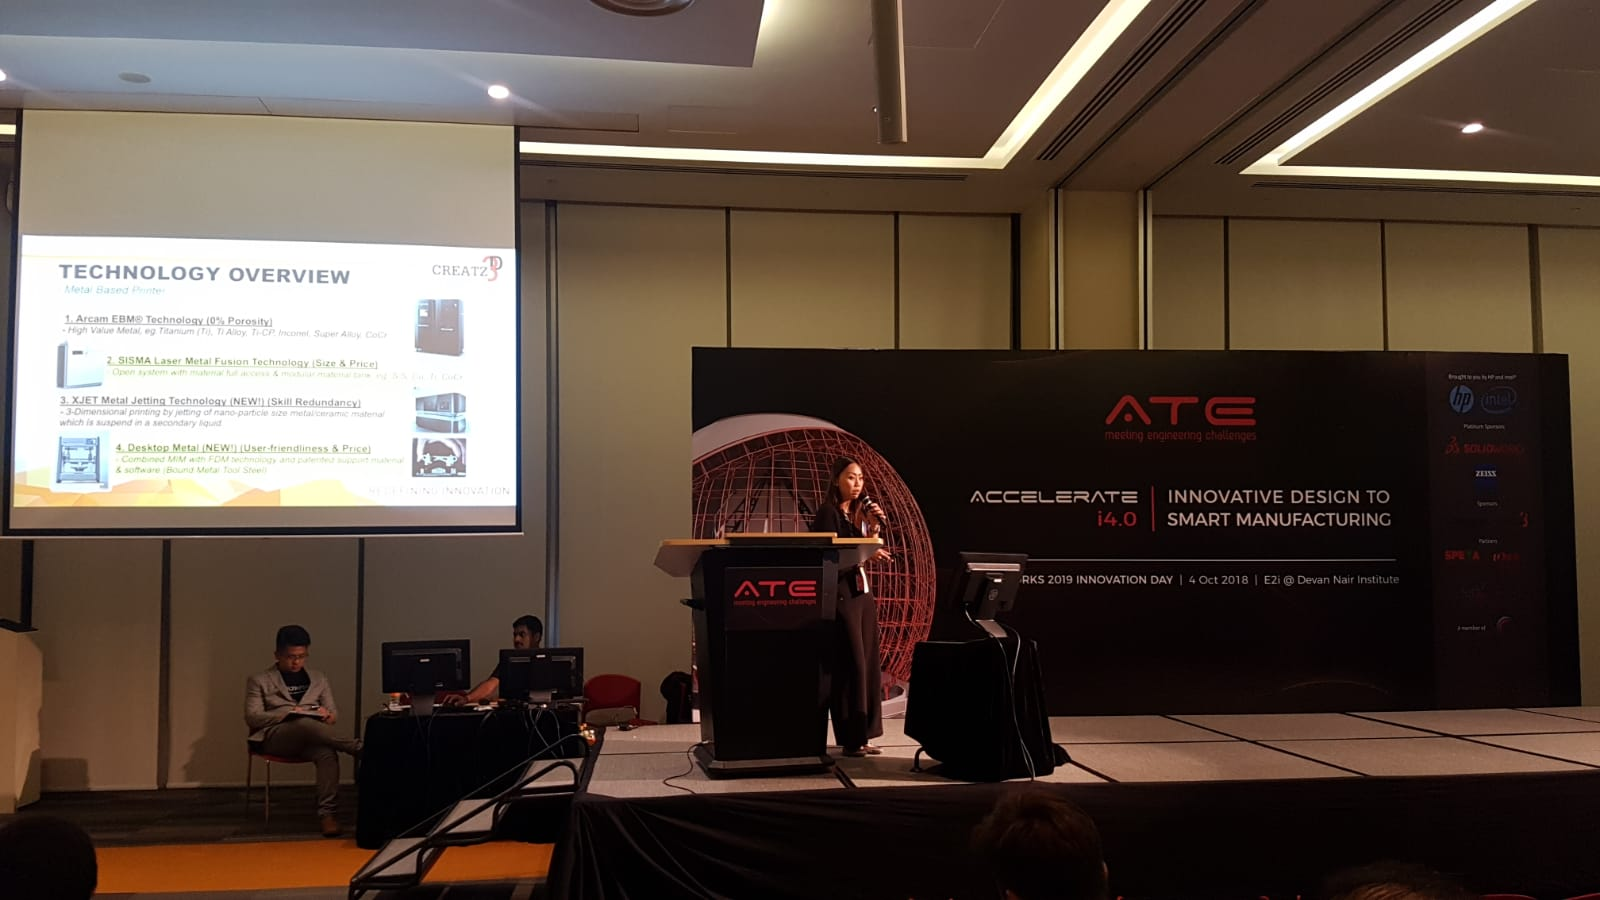 Ms. Sally Chuen, Applications and Sales Manager at Creatz3D, giving her presentation.